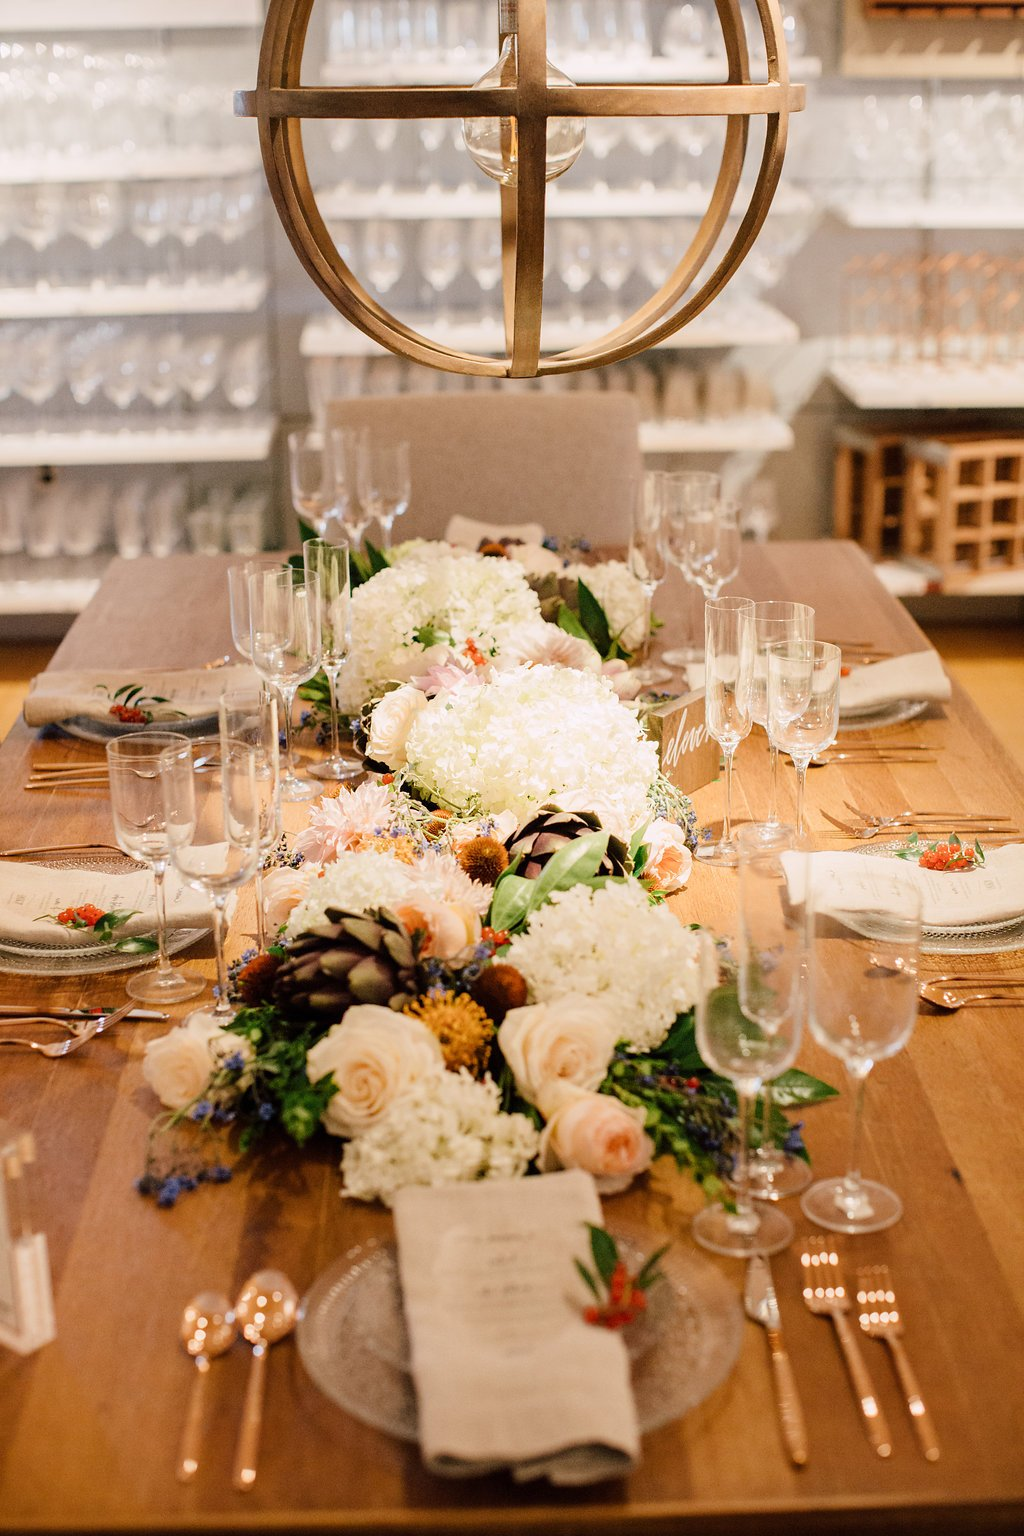 Set table with floral centerpiece and brass chandelier over head